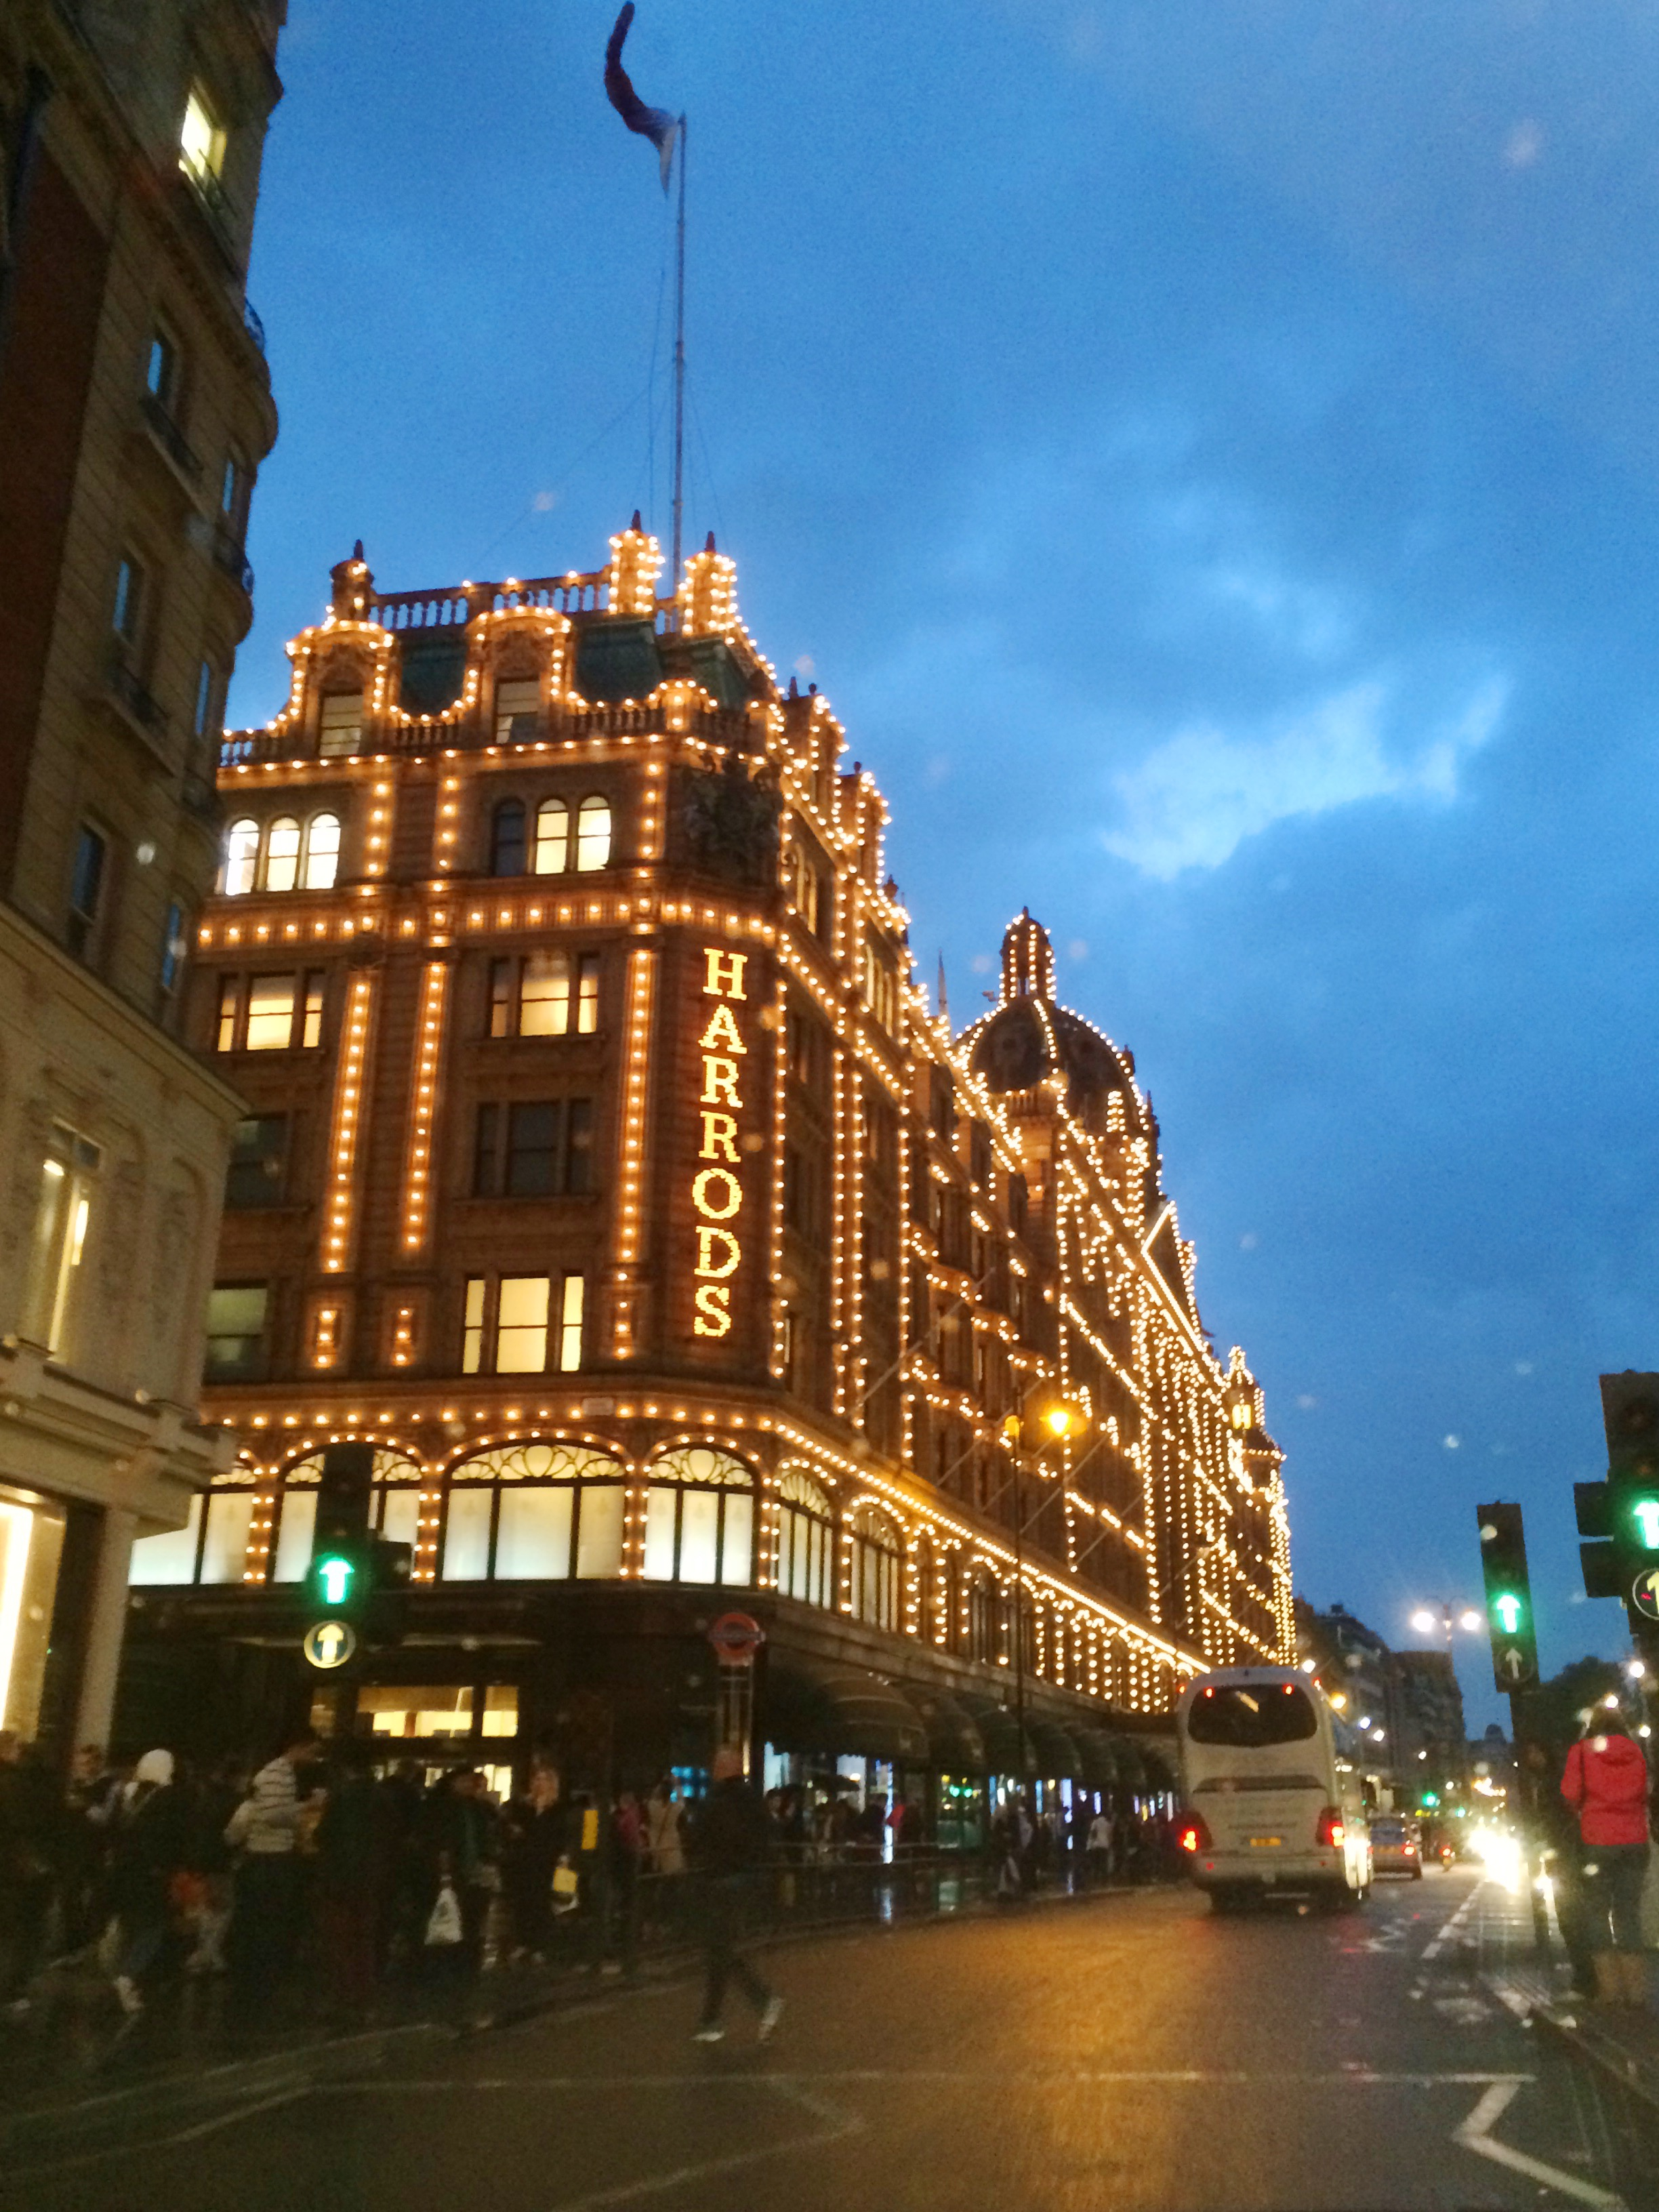 Harrods - London, England, What's Haute in the World